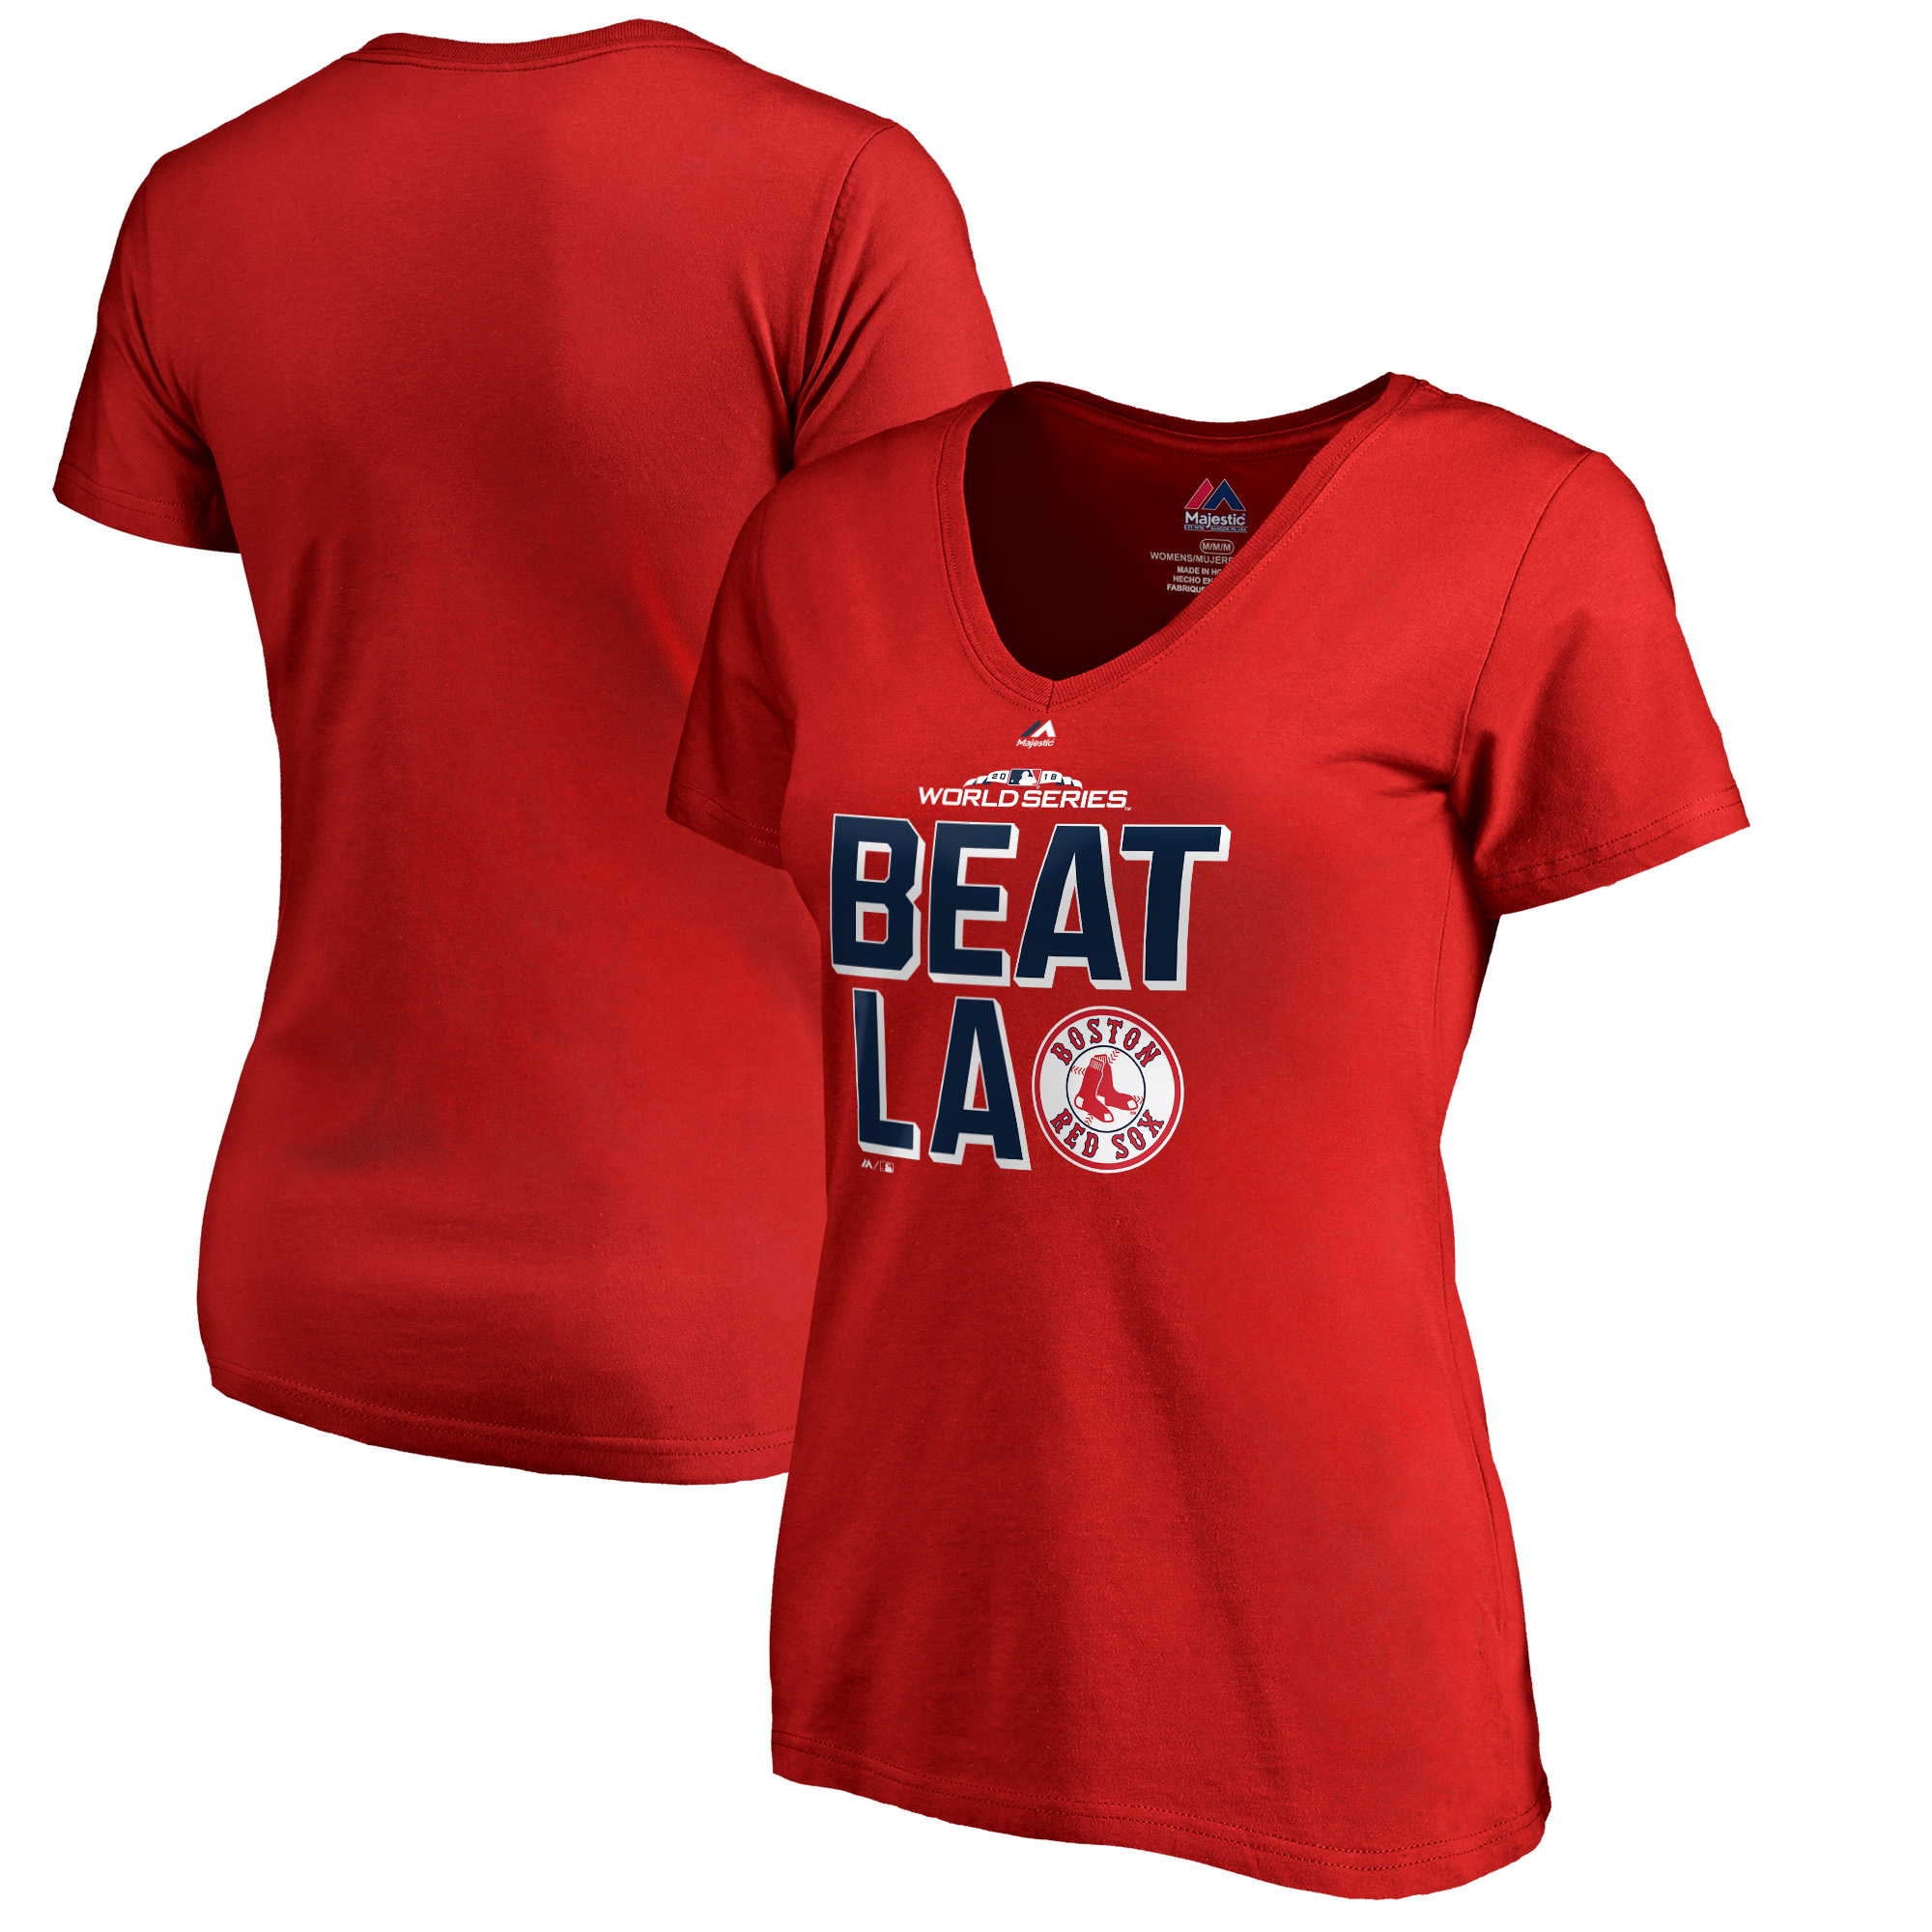 Boston Red Sox Majestic Women's 2018 World Series Beat LA Plus Size T-Shirt - Red